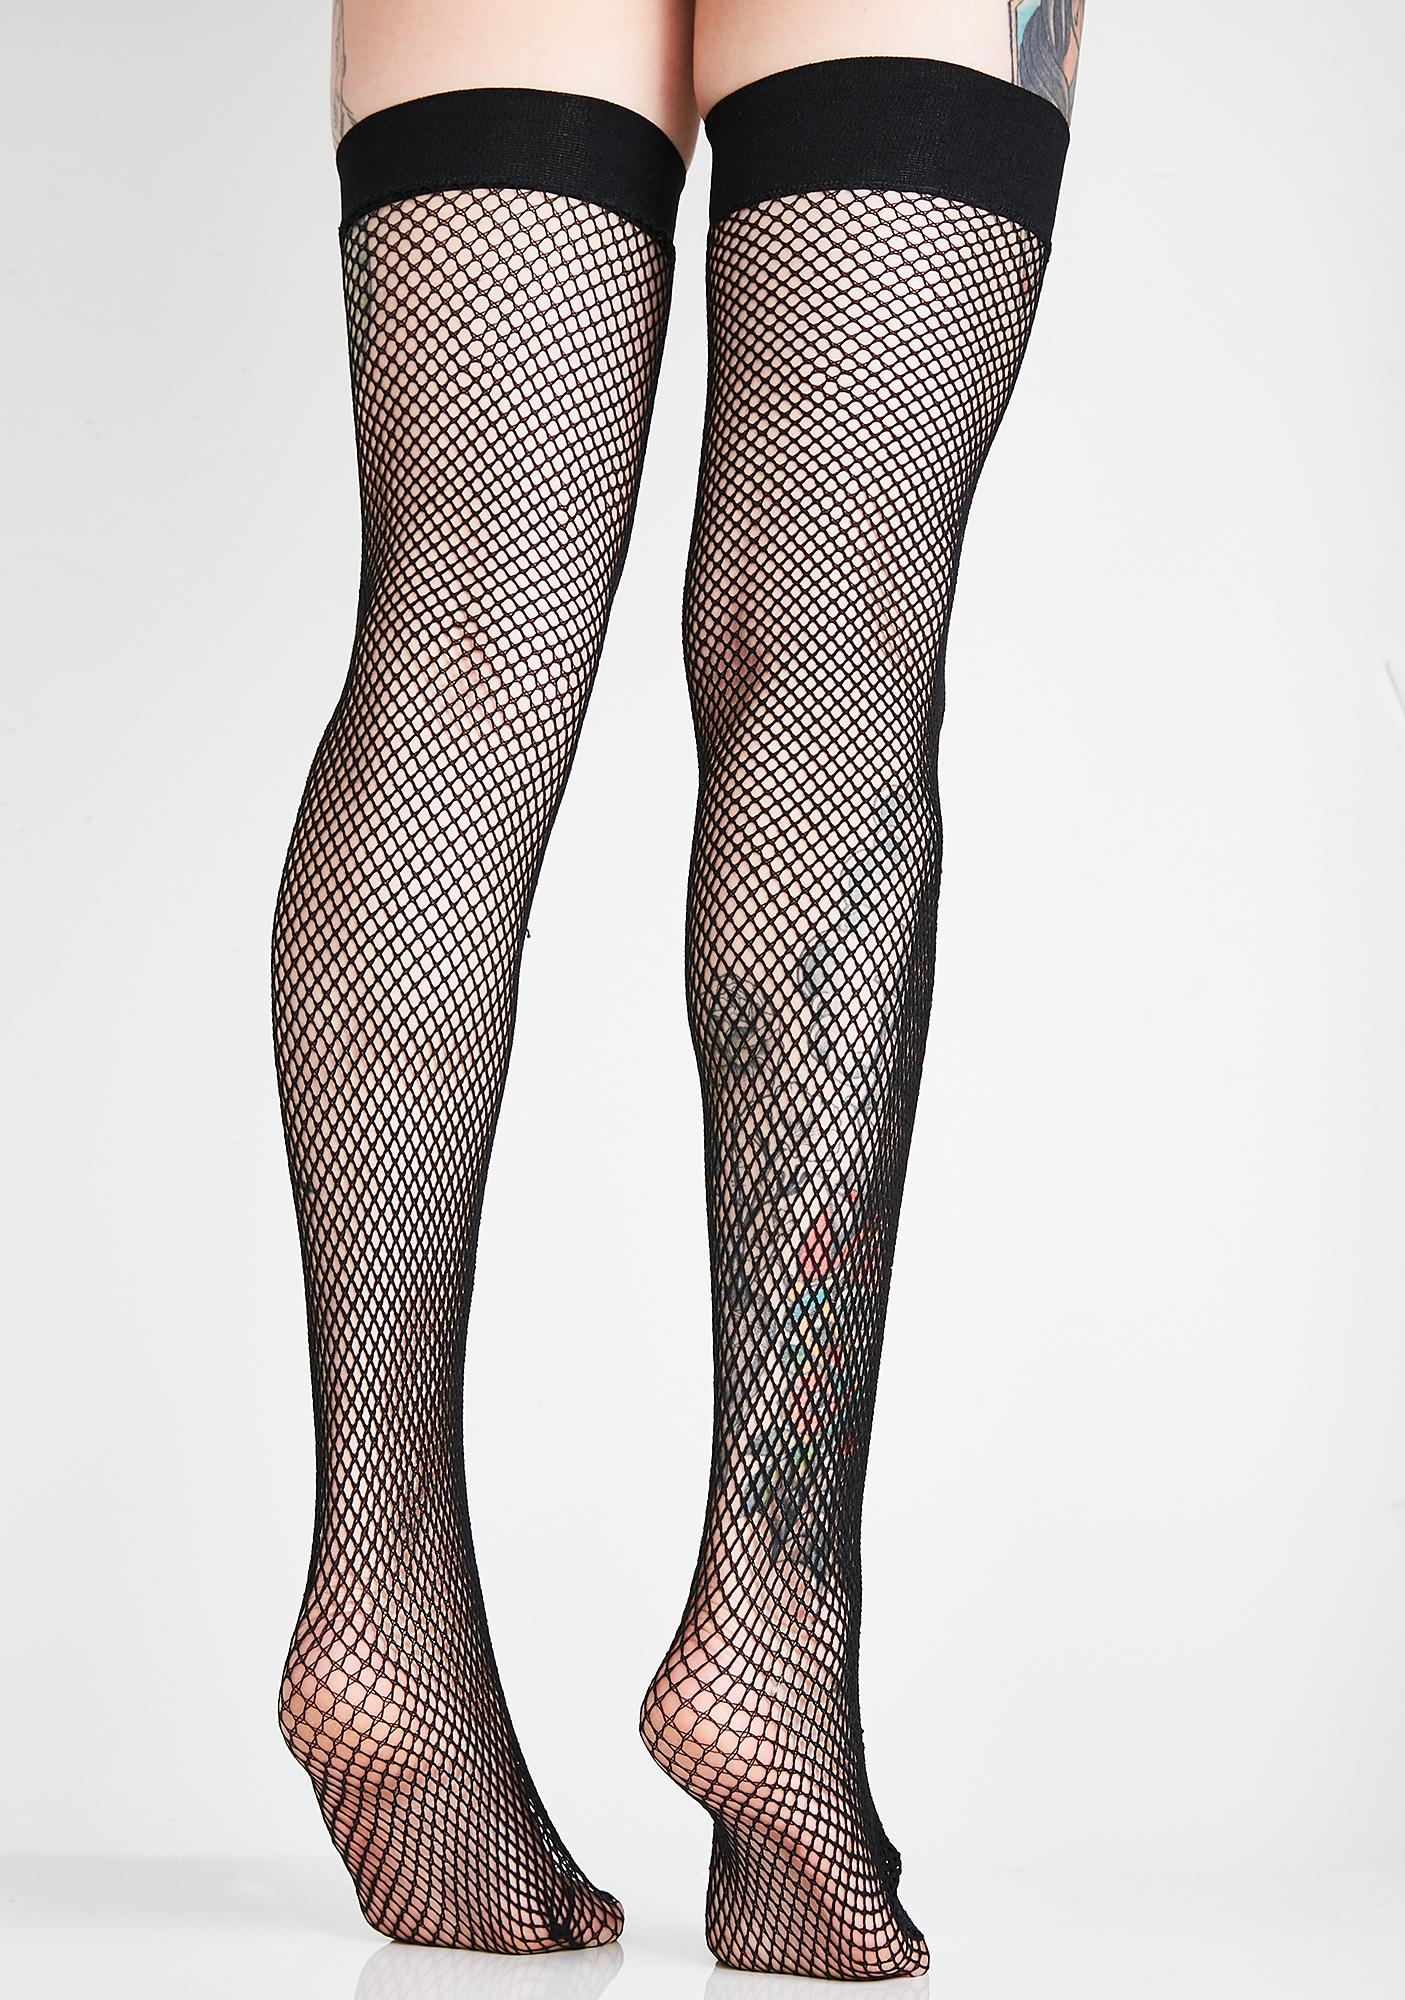 Groupie Luv Fishnet Thigh Highs